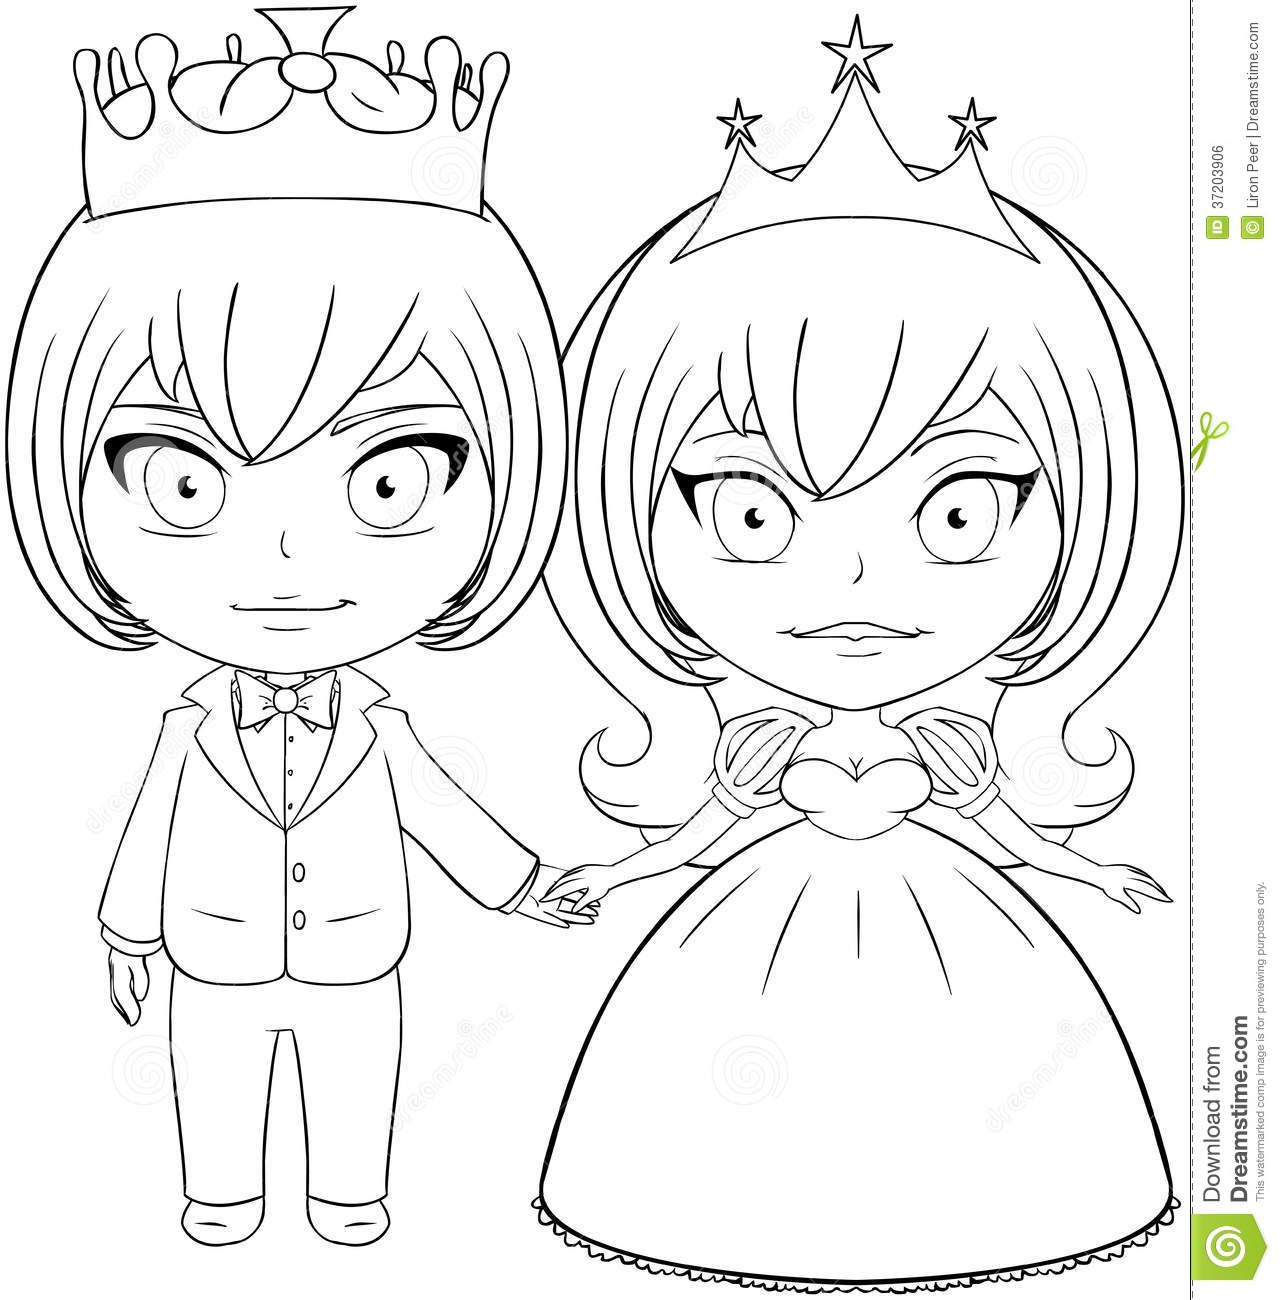 Anime For > Anime Couples Hugging Coloring Pages | Doodle ...